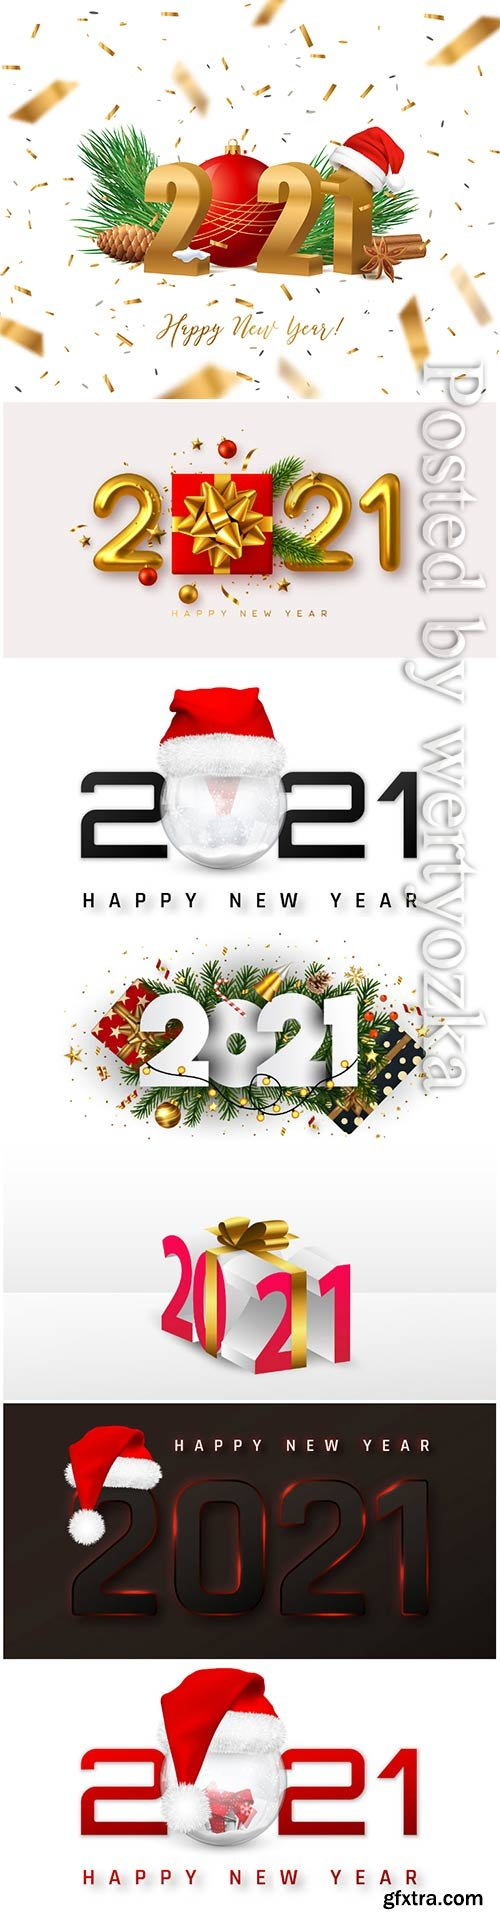 Happy new year 2021 cover with snowball in santa hat in vector